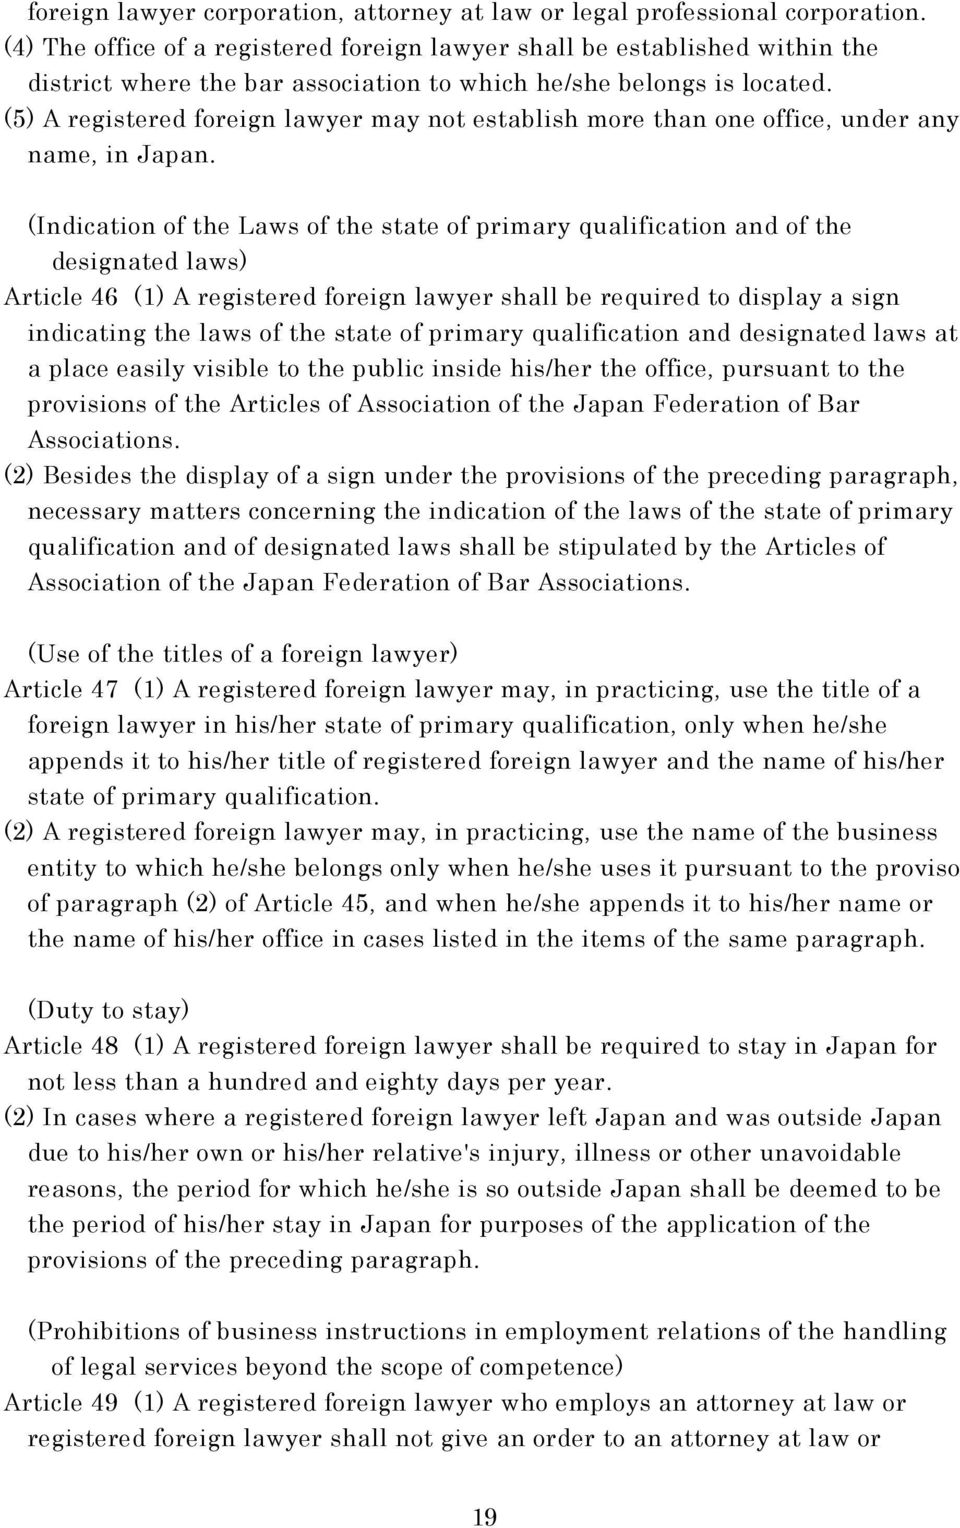 (5) A registered foreign lawyer may not establish more than one office, under any name, in Japan.